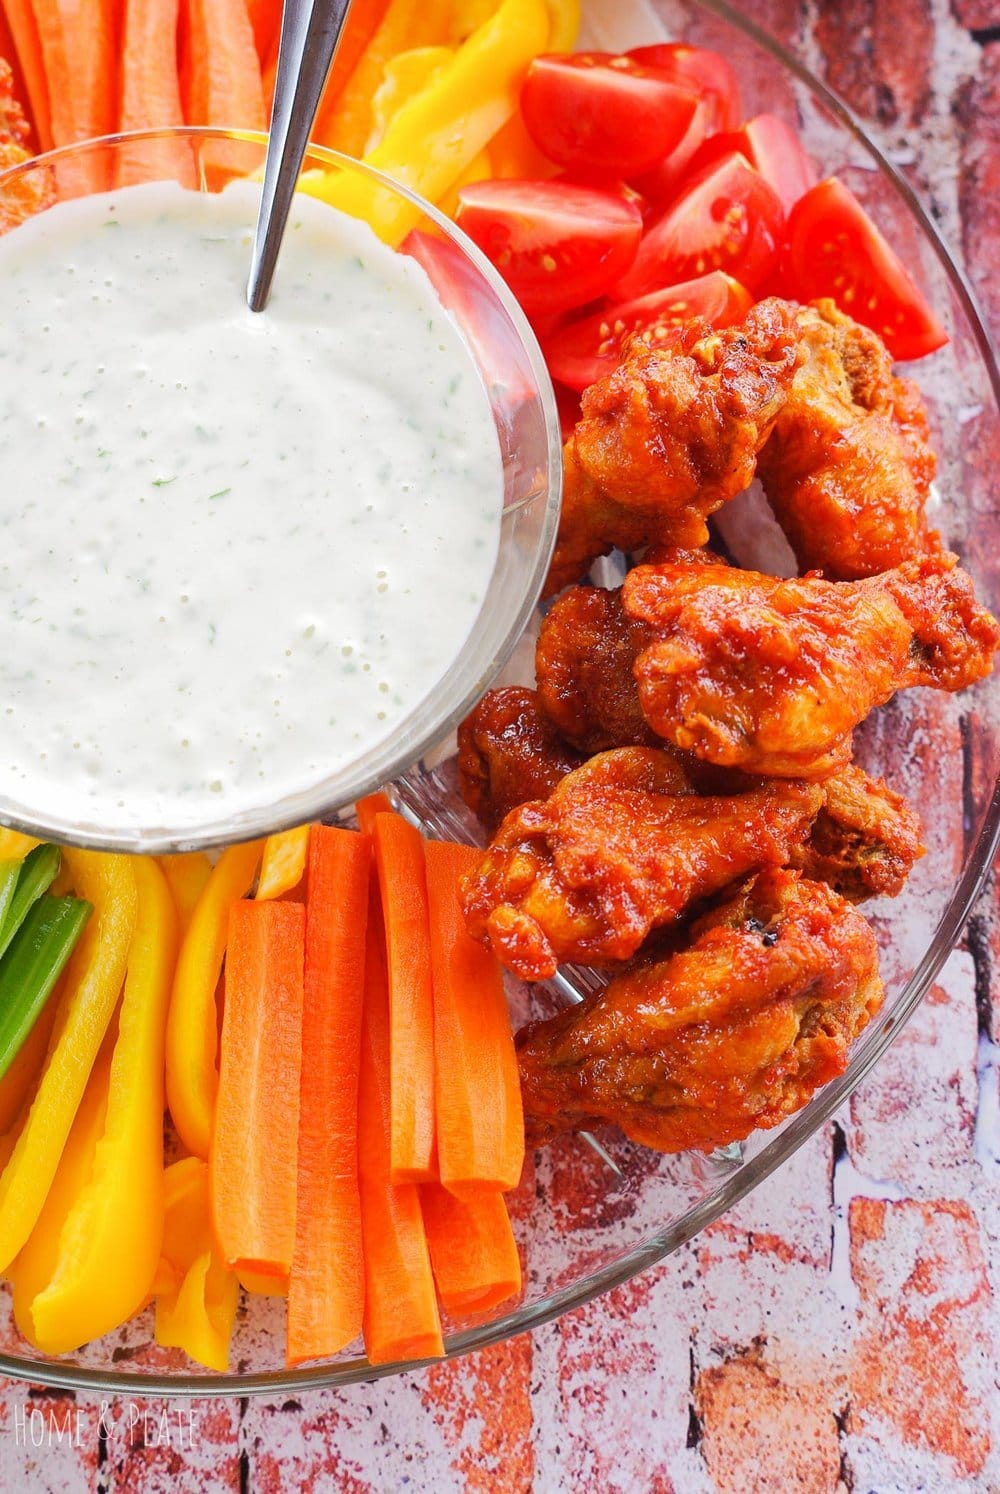 Cilantro Ranch Dipping Sauce – for wings & veggies